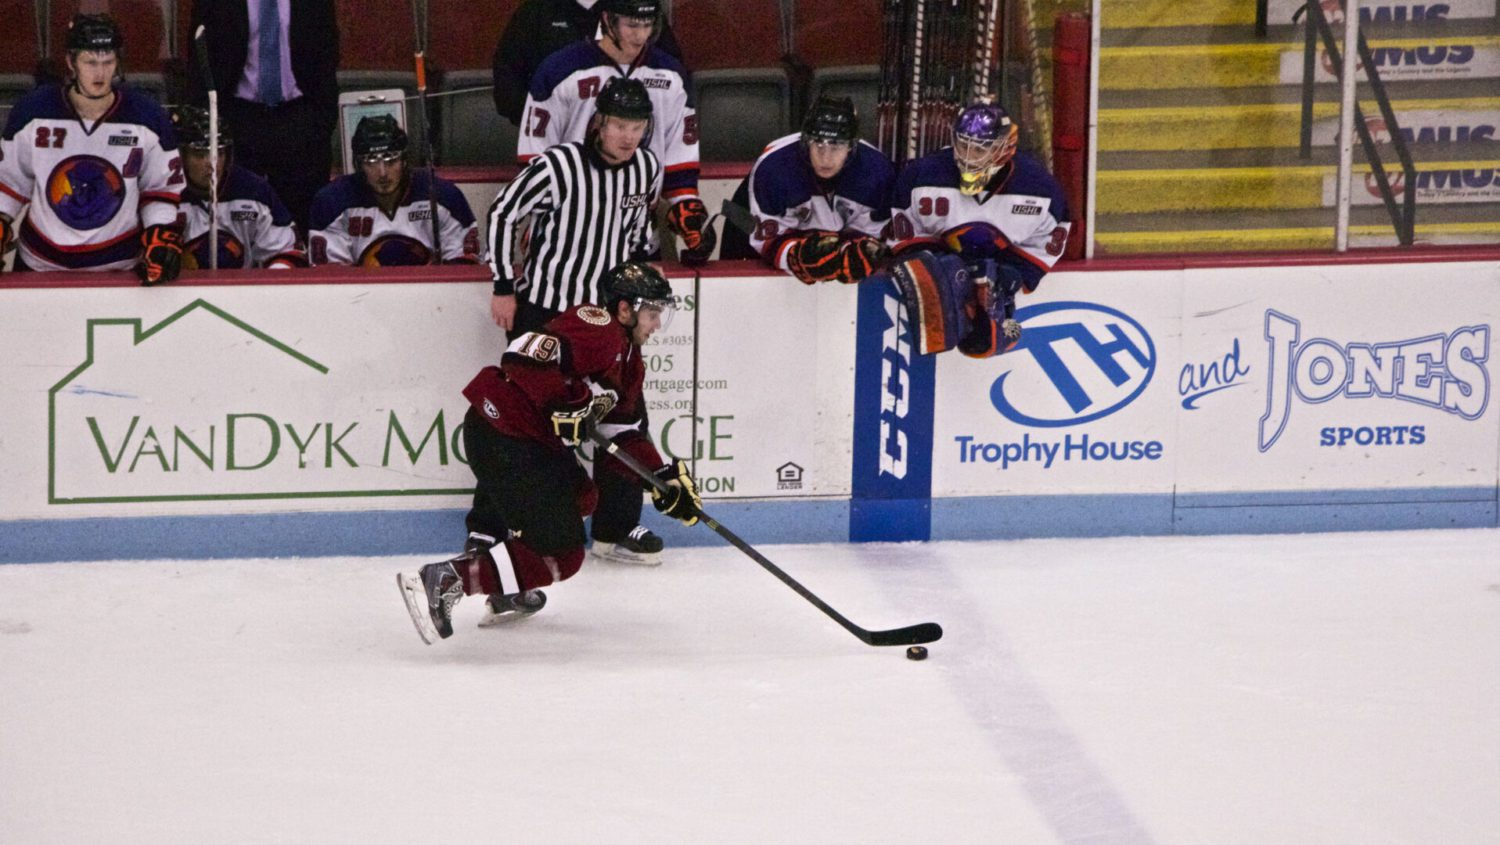 Lumberjacks, Schierhorn win sixth game in a row and move into a tie for fourth place and the final playoff spot